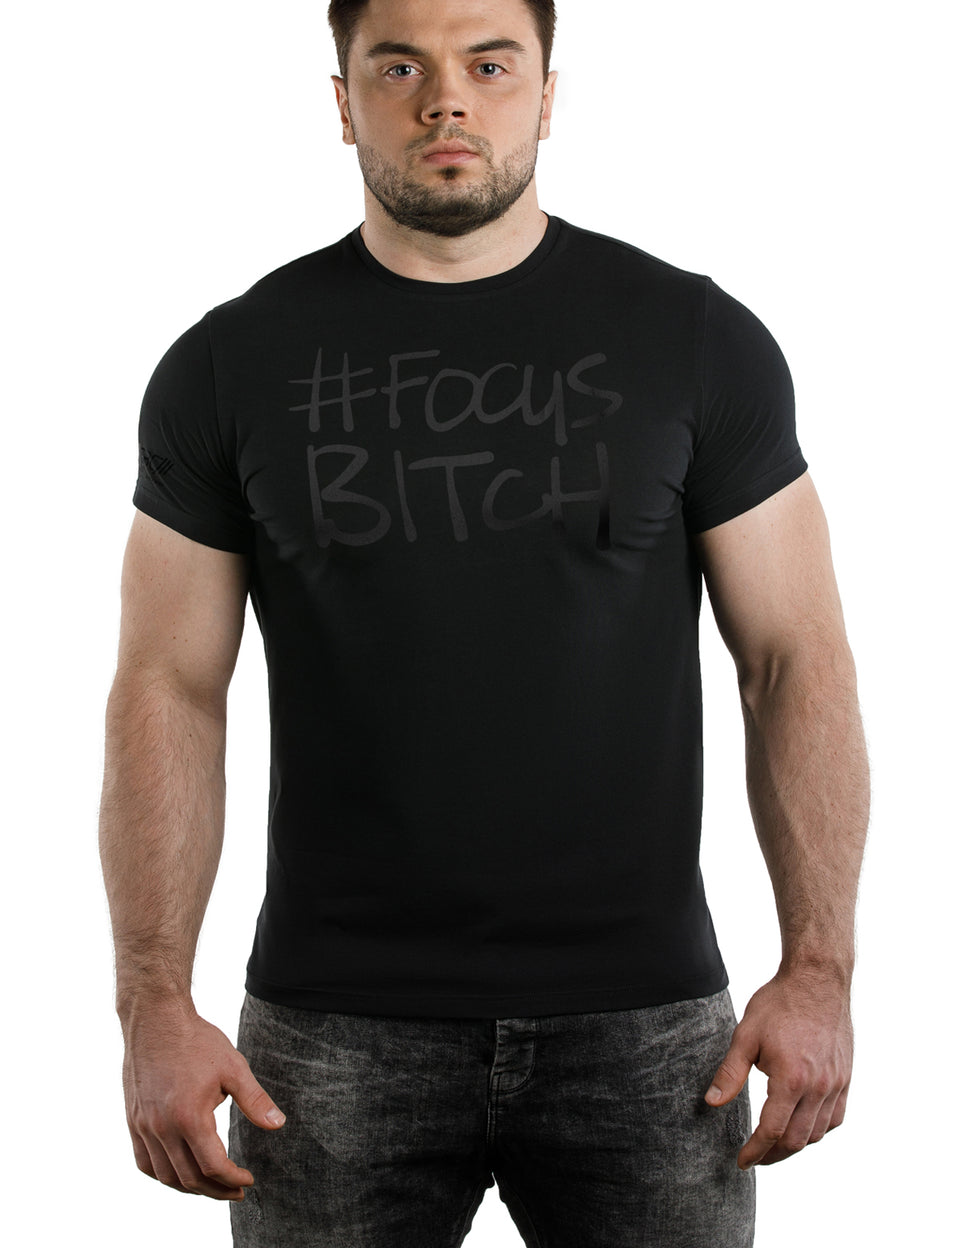 Warm Body Cold Mind #FocusB Black on Black T-Shirt